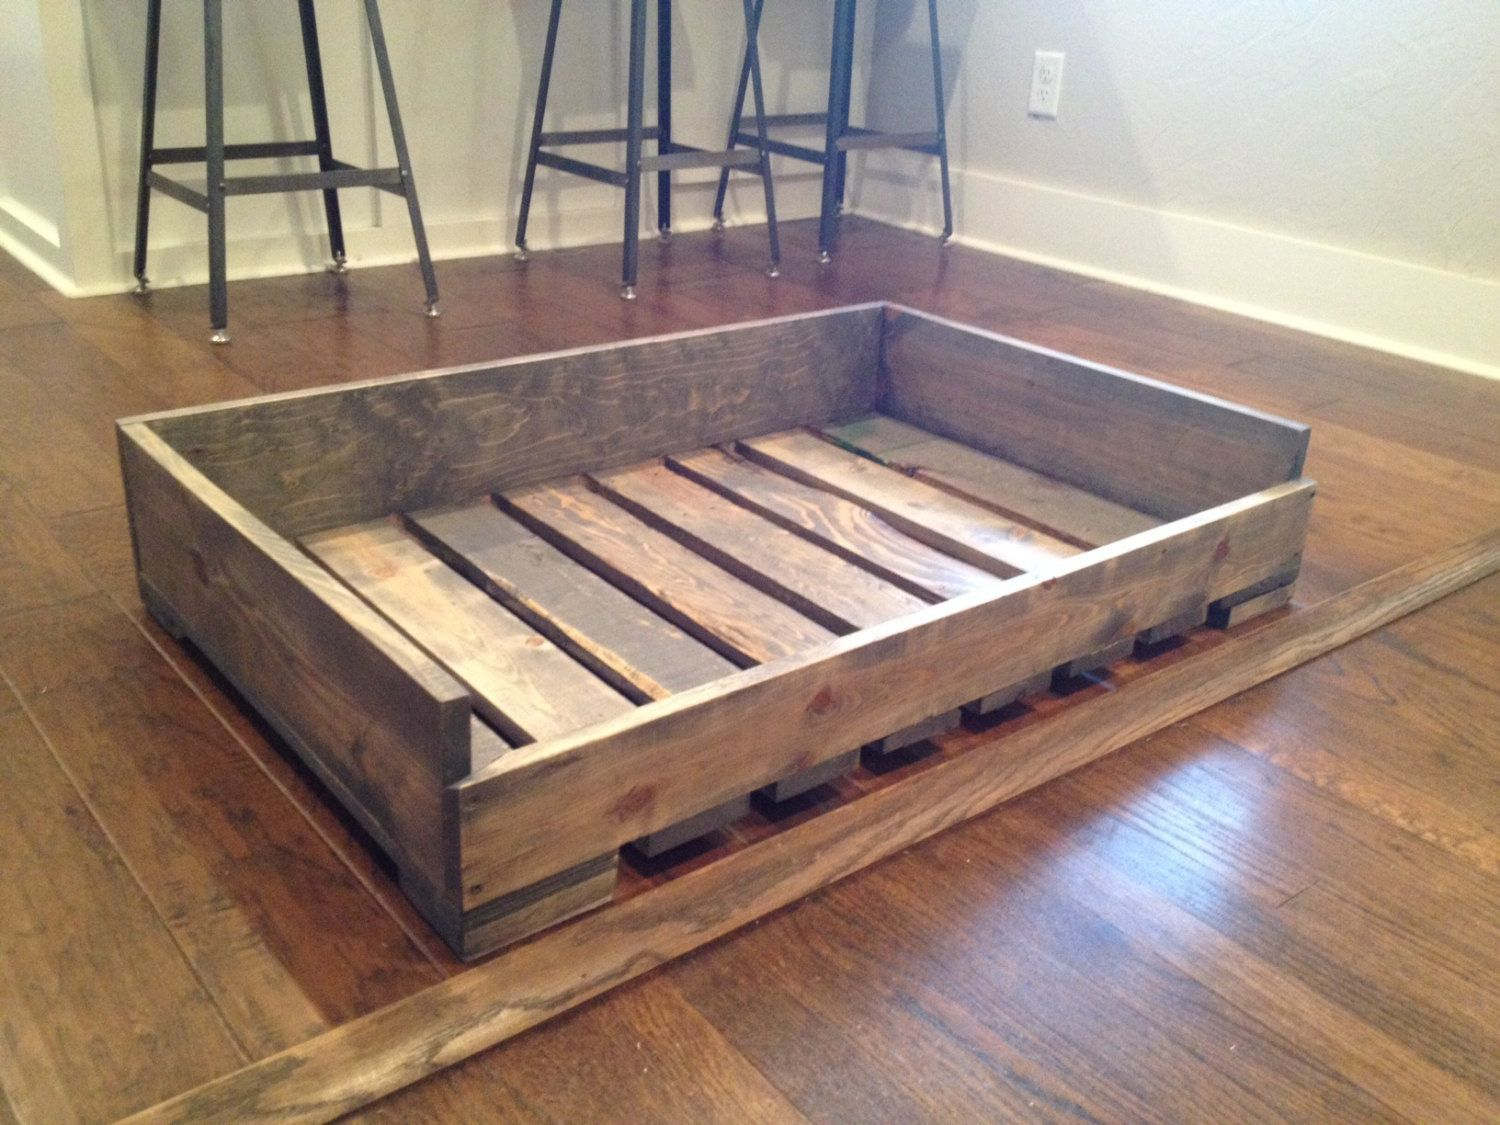 Handmade custom pallet style solid wood dog beds by ...